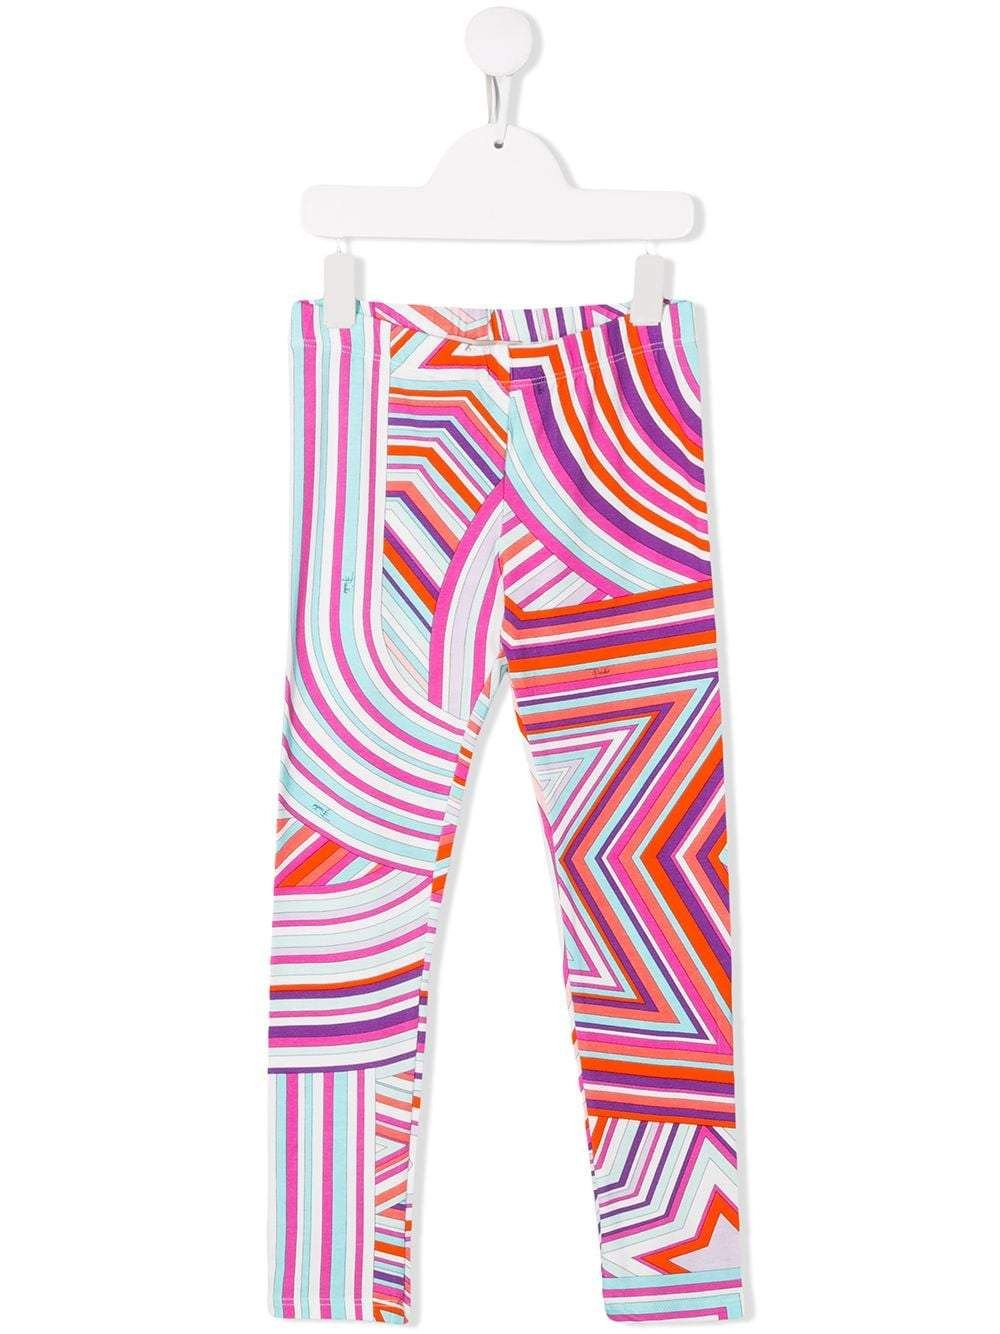 EMILIO PUCCI Kids Multicolor Leggings - Maison De Fashion